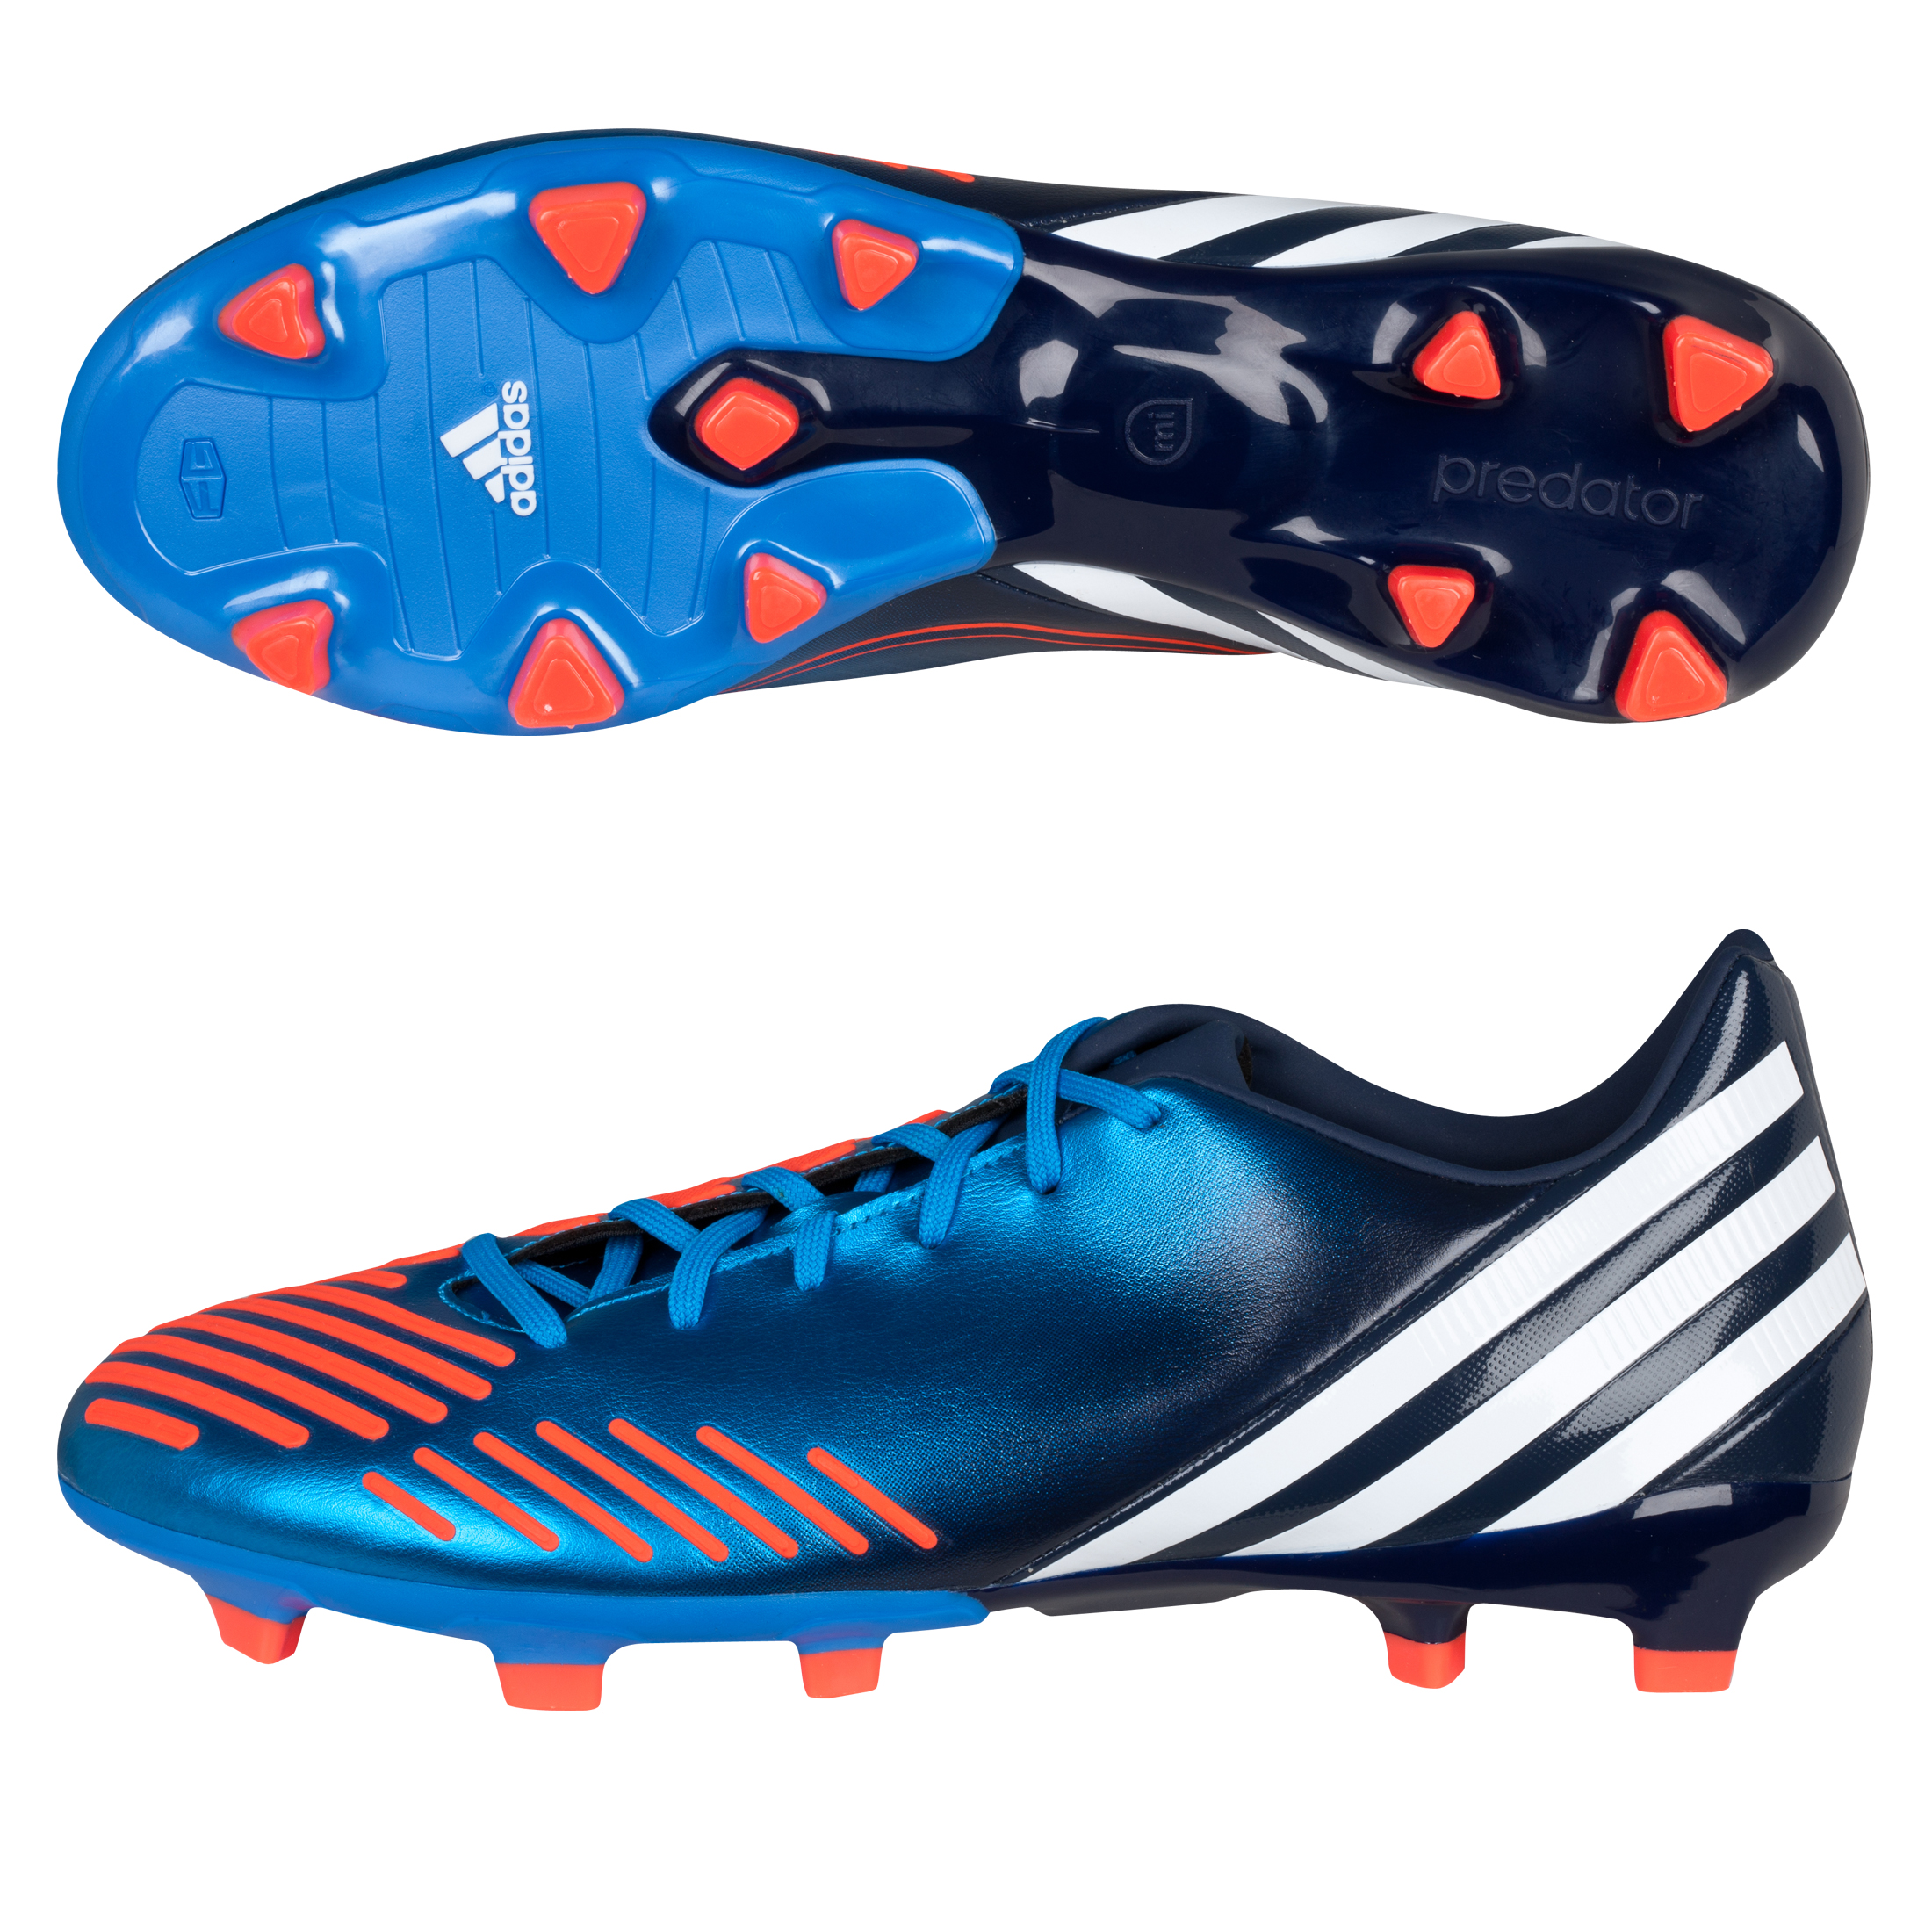 Adidas Predator Absolion LZ TRX Firm Ground Football Boots - Bright Blue/White/Infrared